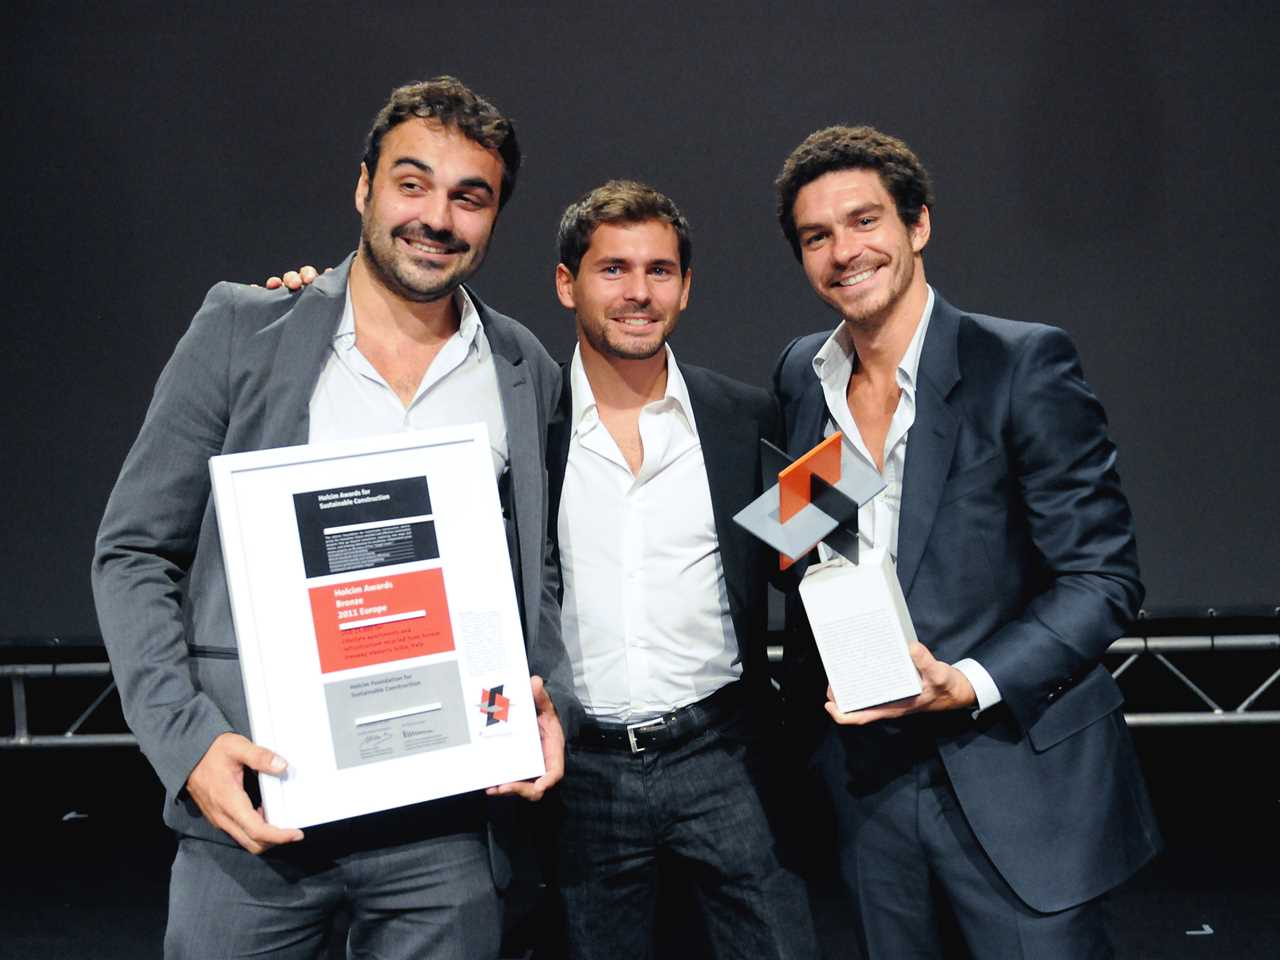 Winners of the Holcim Awards Bronze 2011 Europe at the regional Holcim Awards prize handover in …